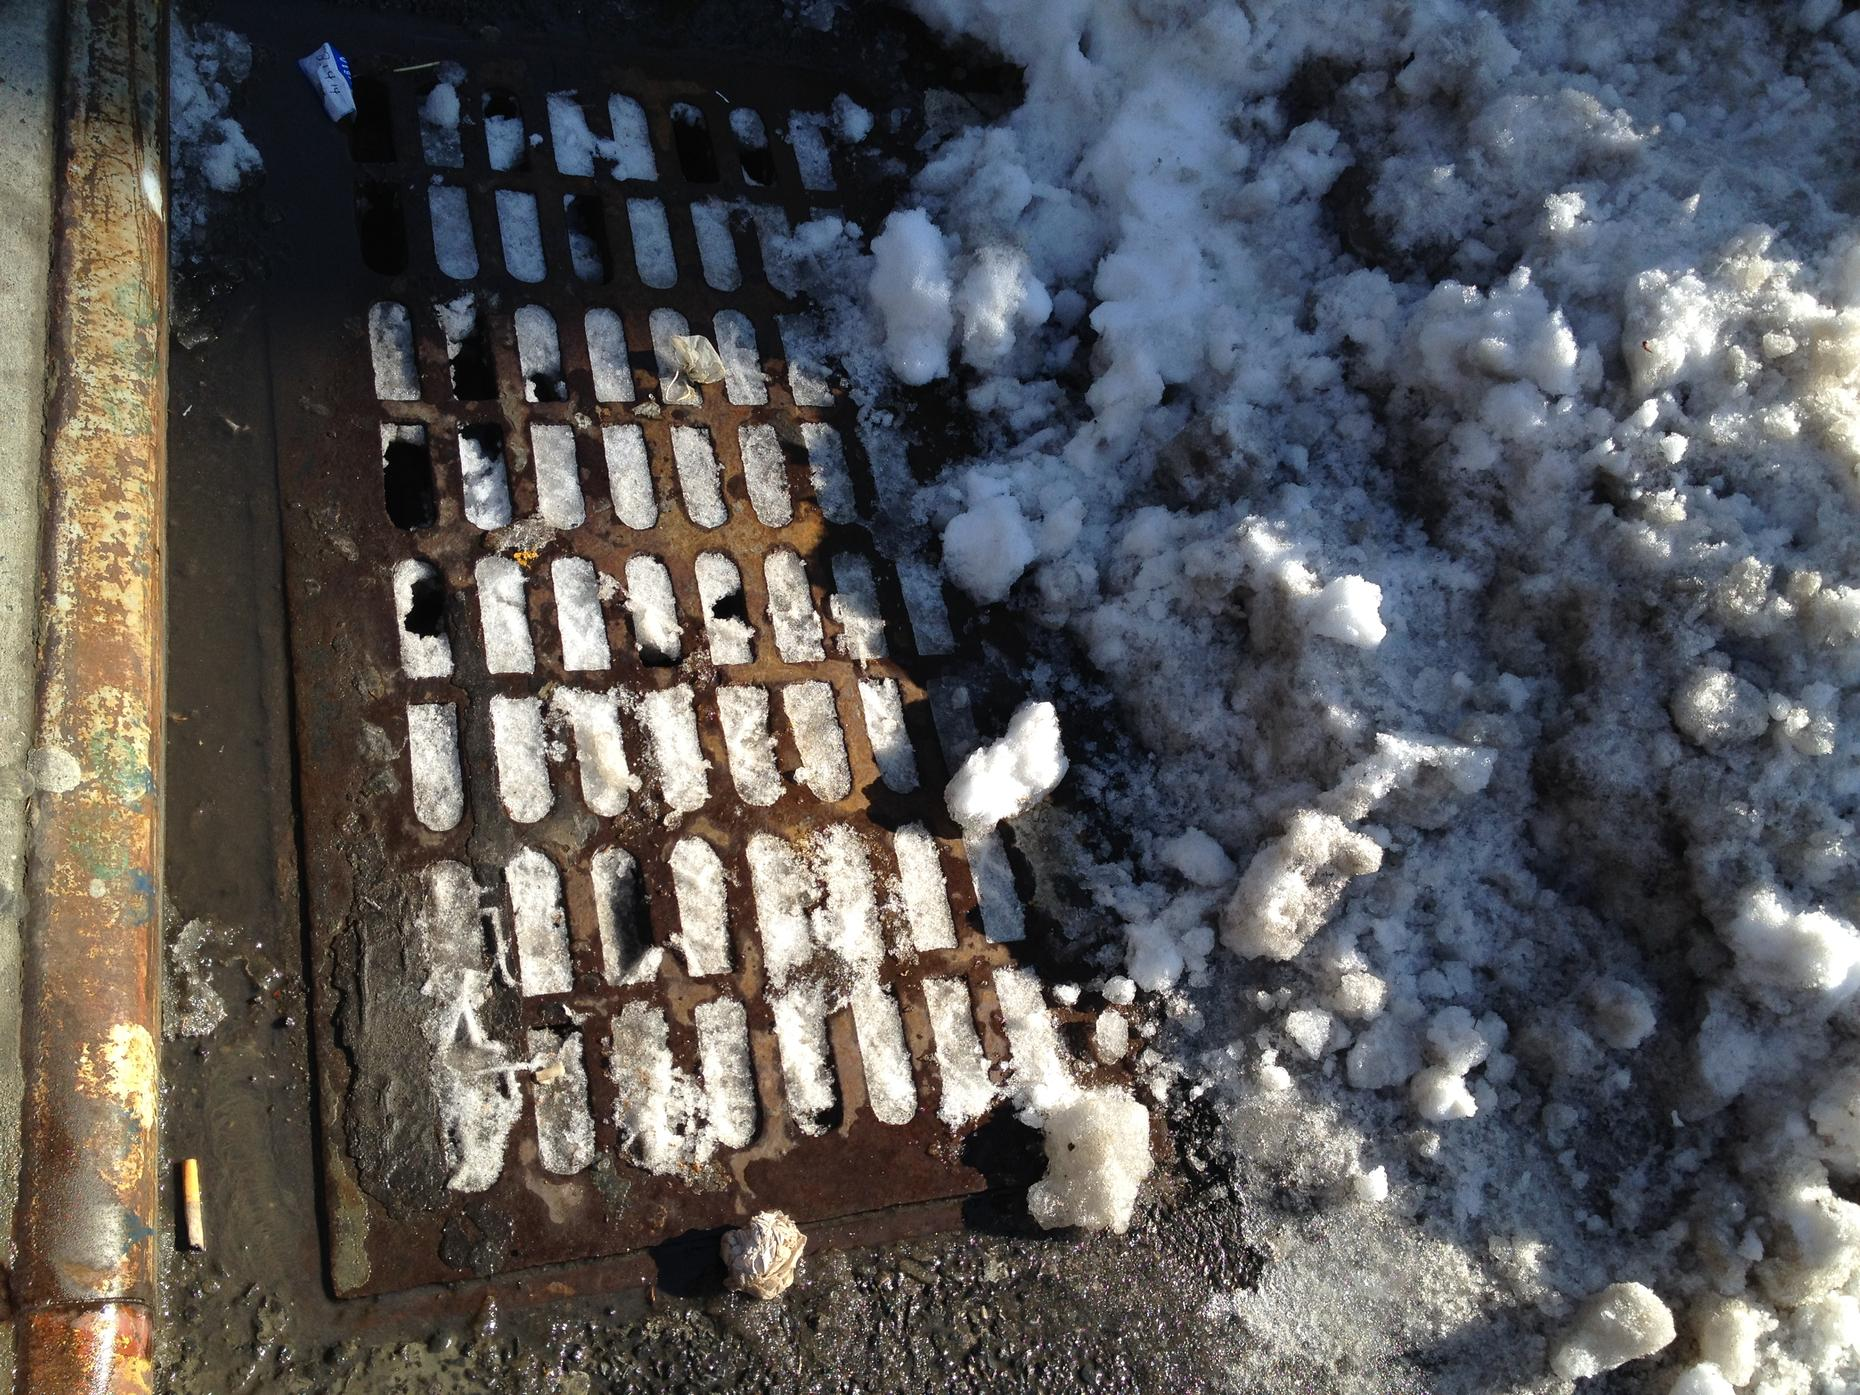 Street grate clogged with snow